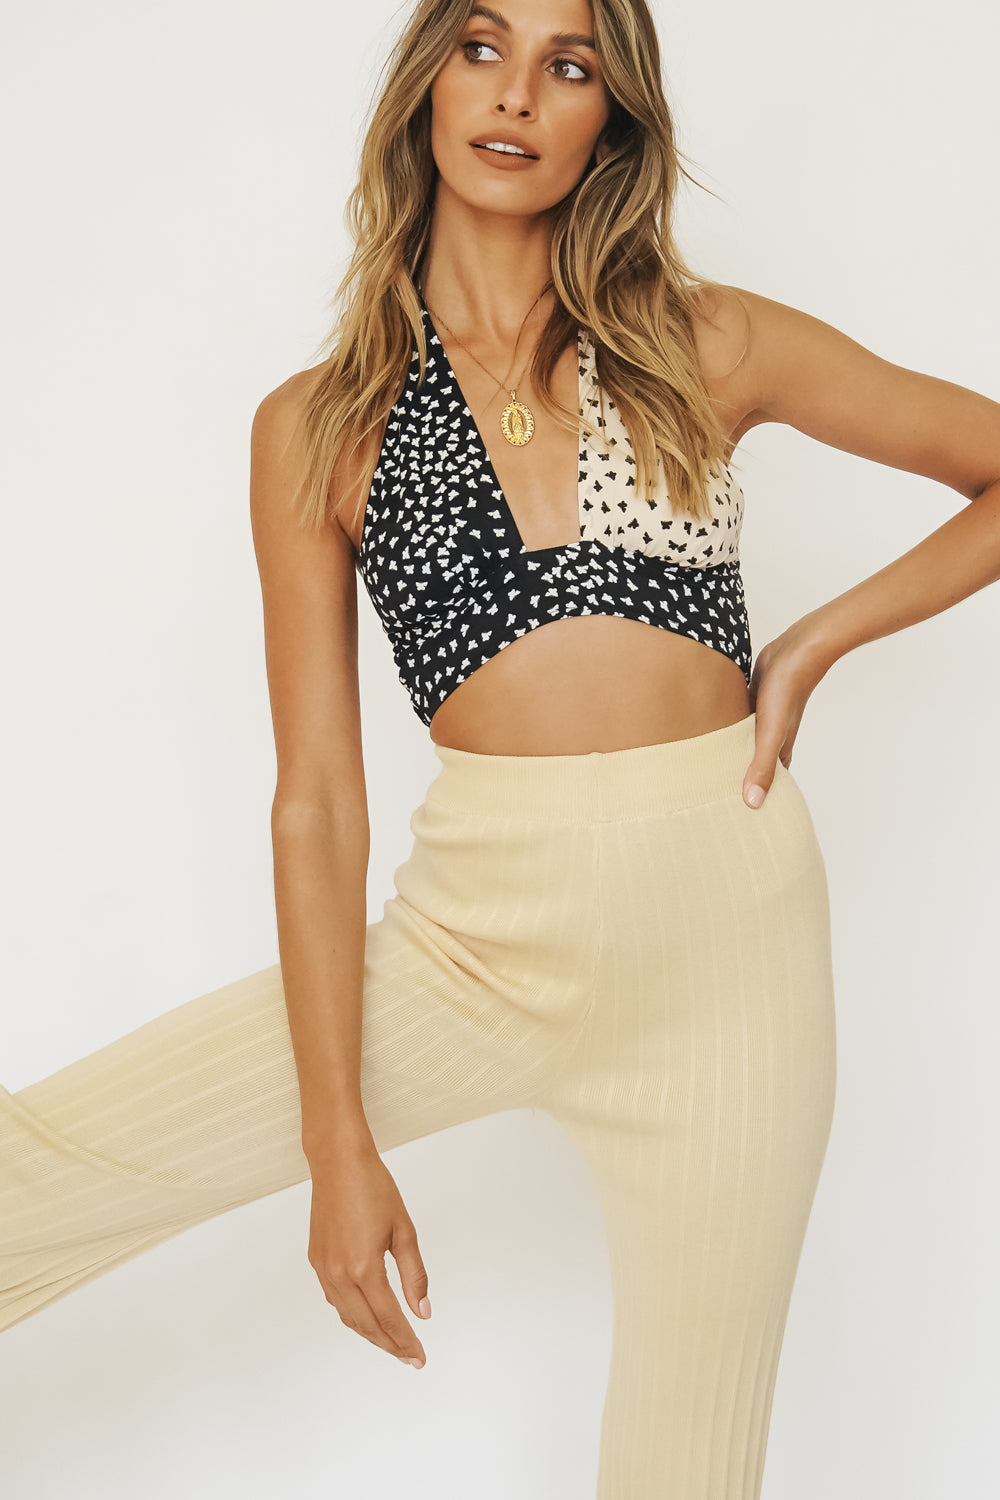 Everybody Dance Butterfly Halter Top // Black